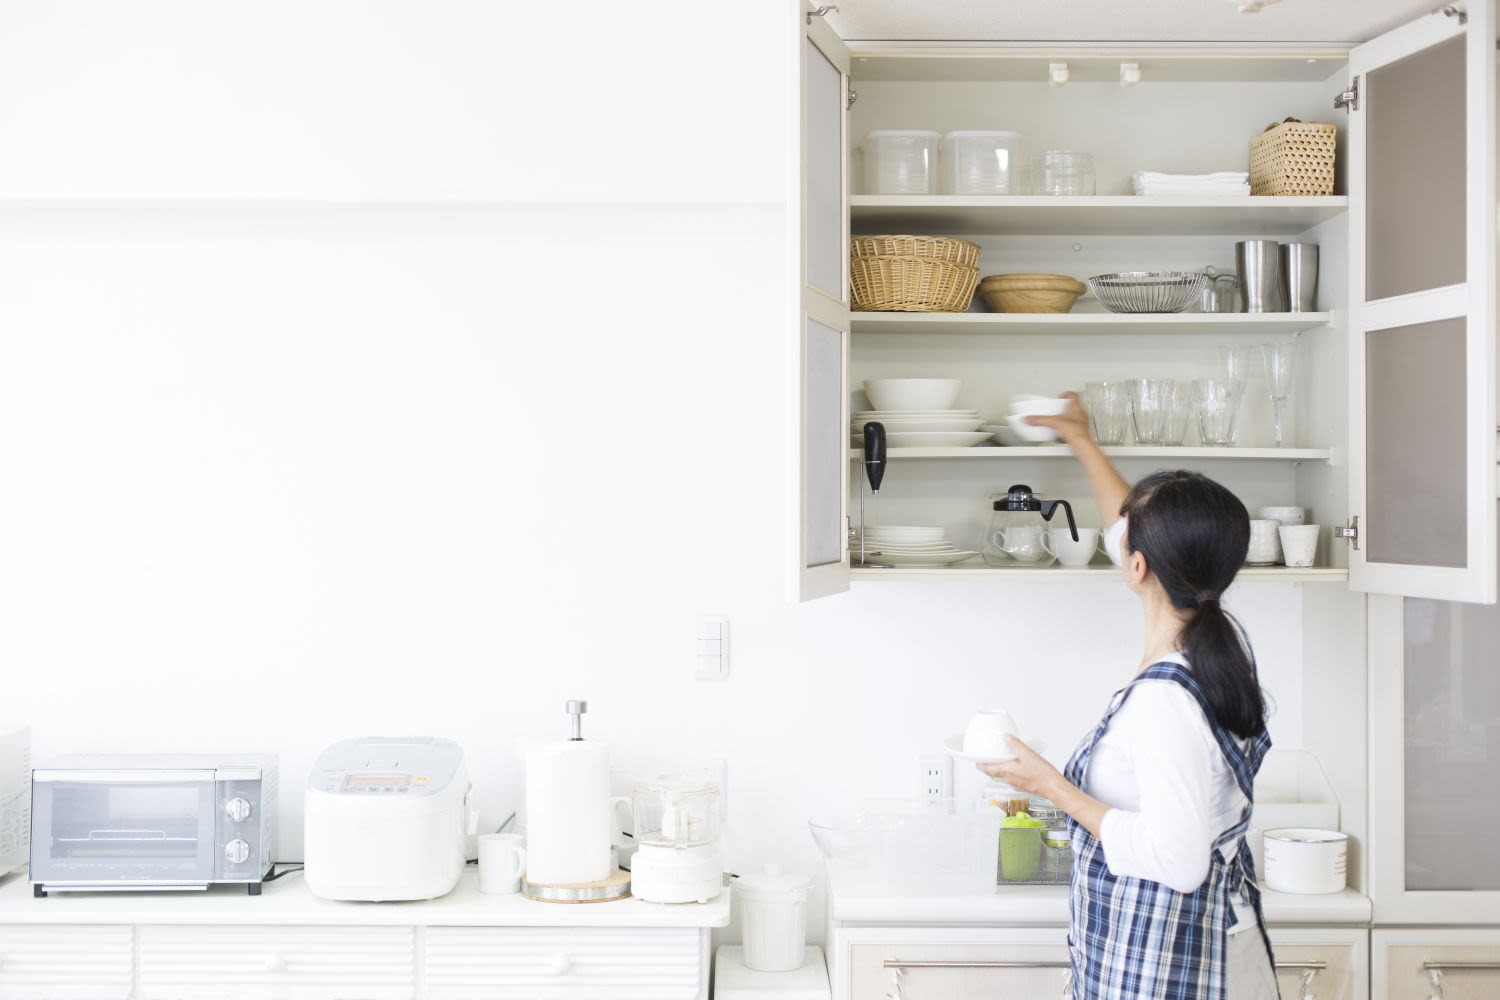 cabinet 80+ Unusual Kitchen Design Ideas for Small Spaces in 2021